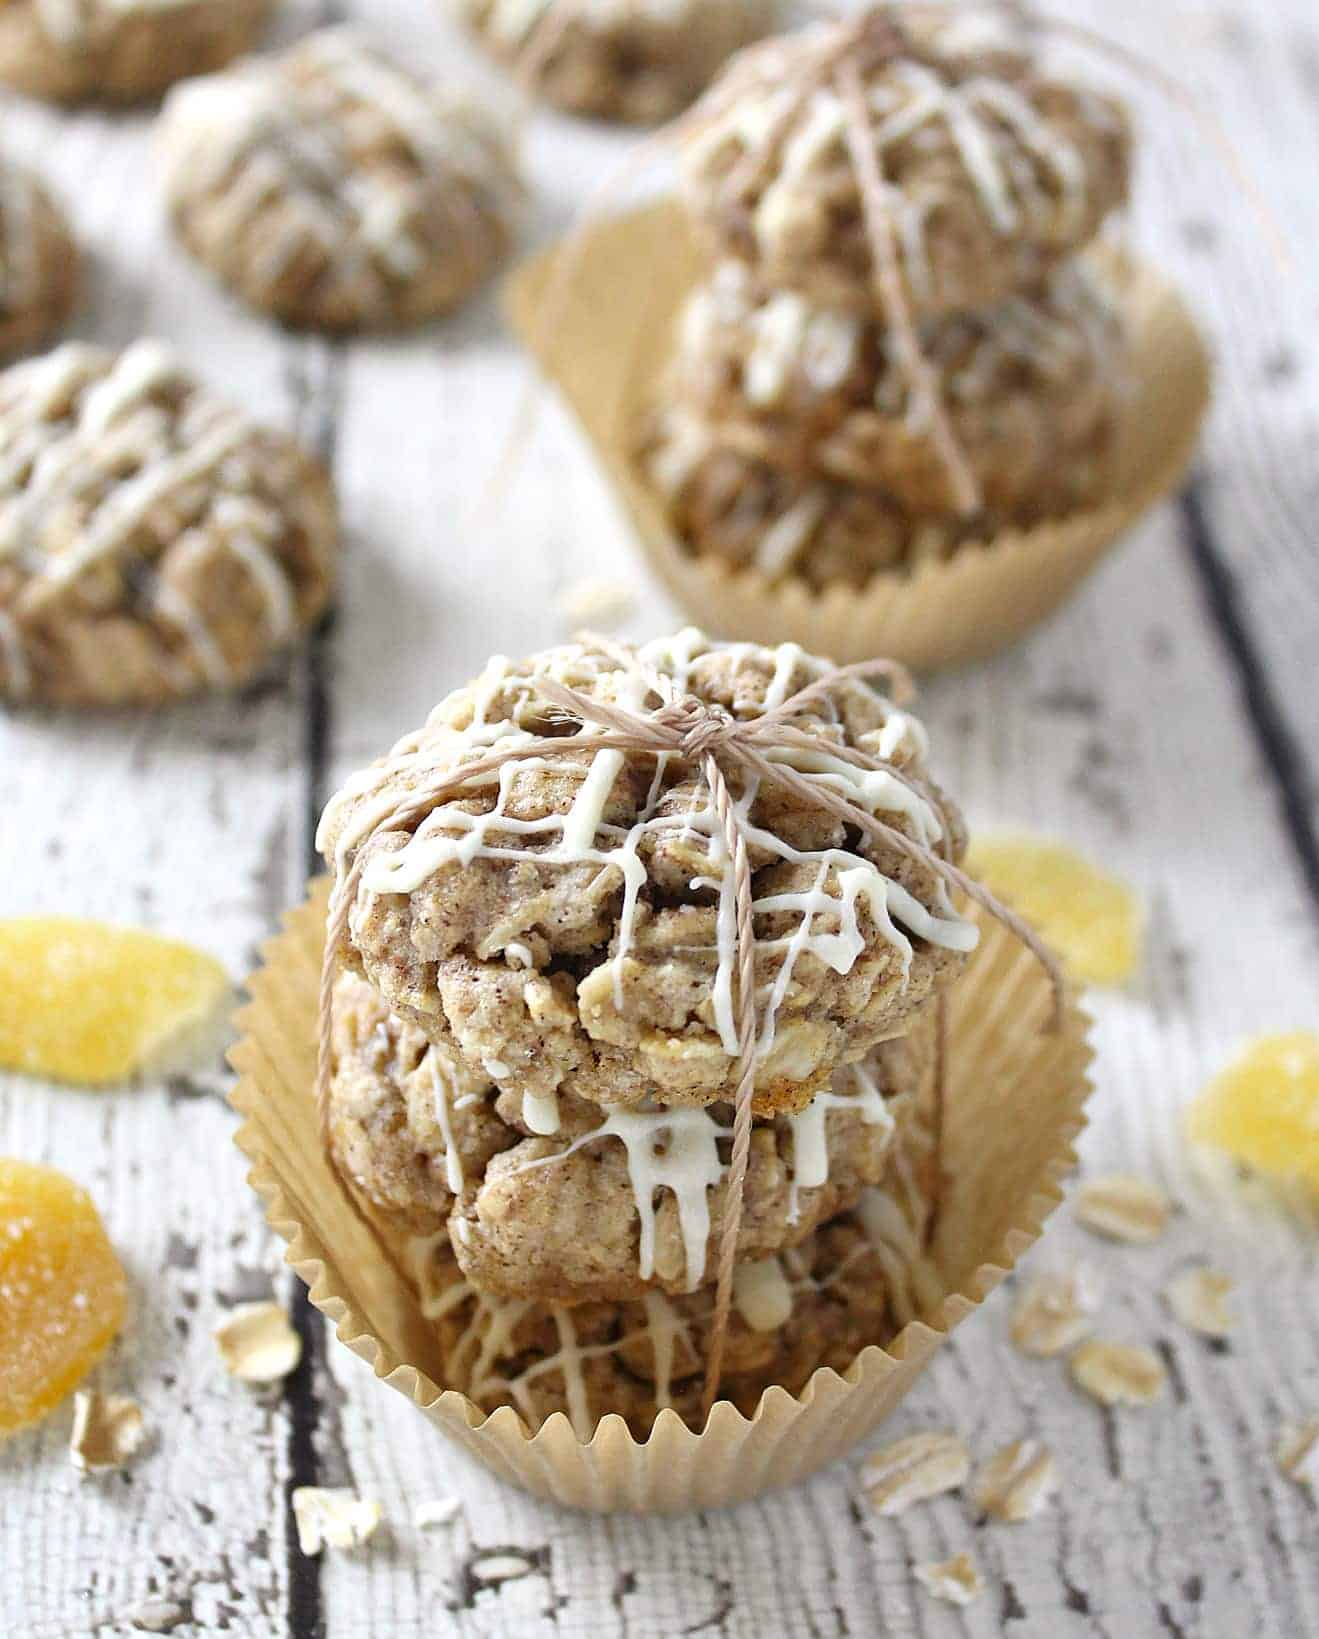 These gluten free Oatmeal Ginger Cookies with a white chocolate drizzle